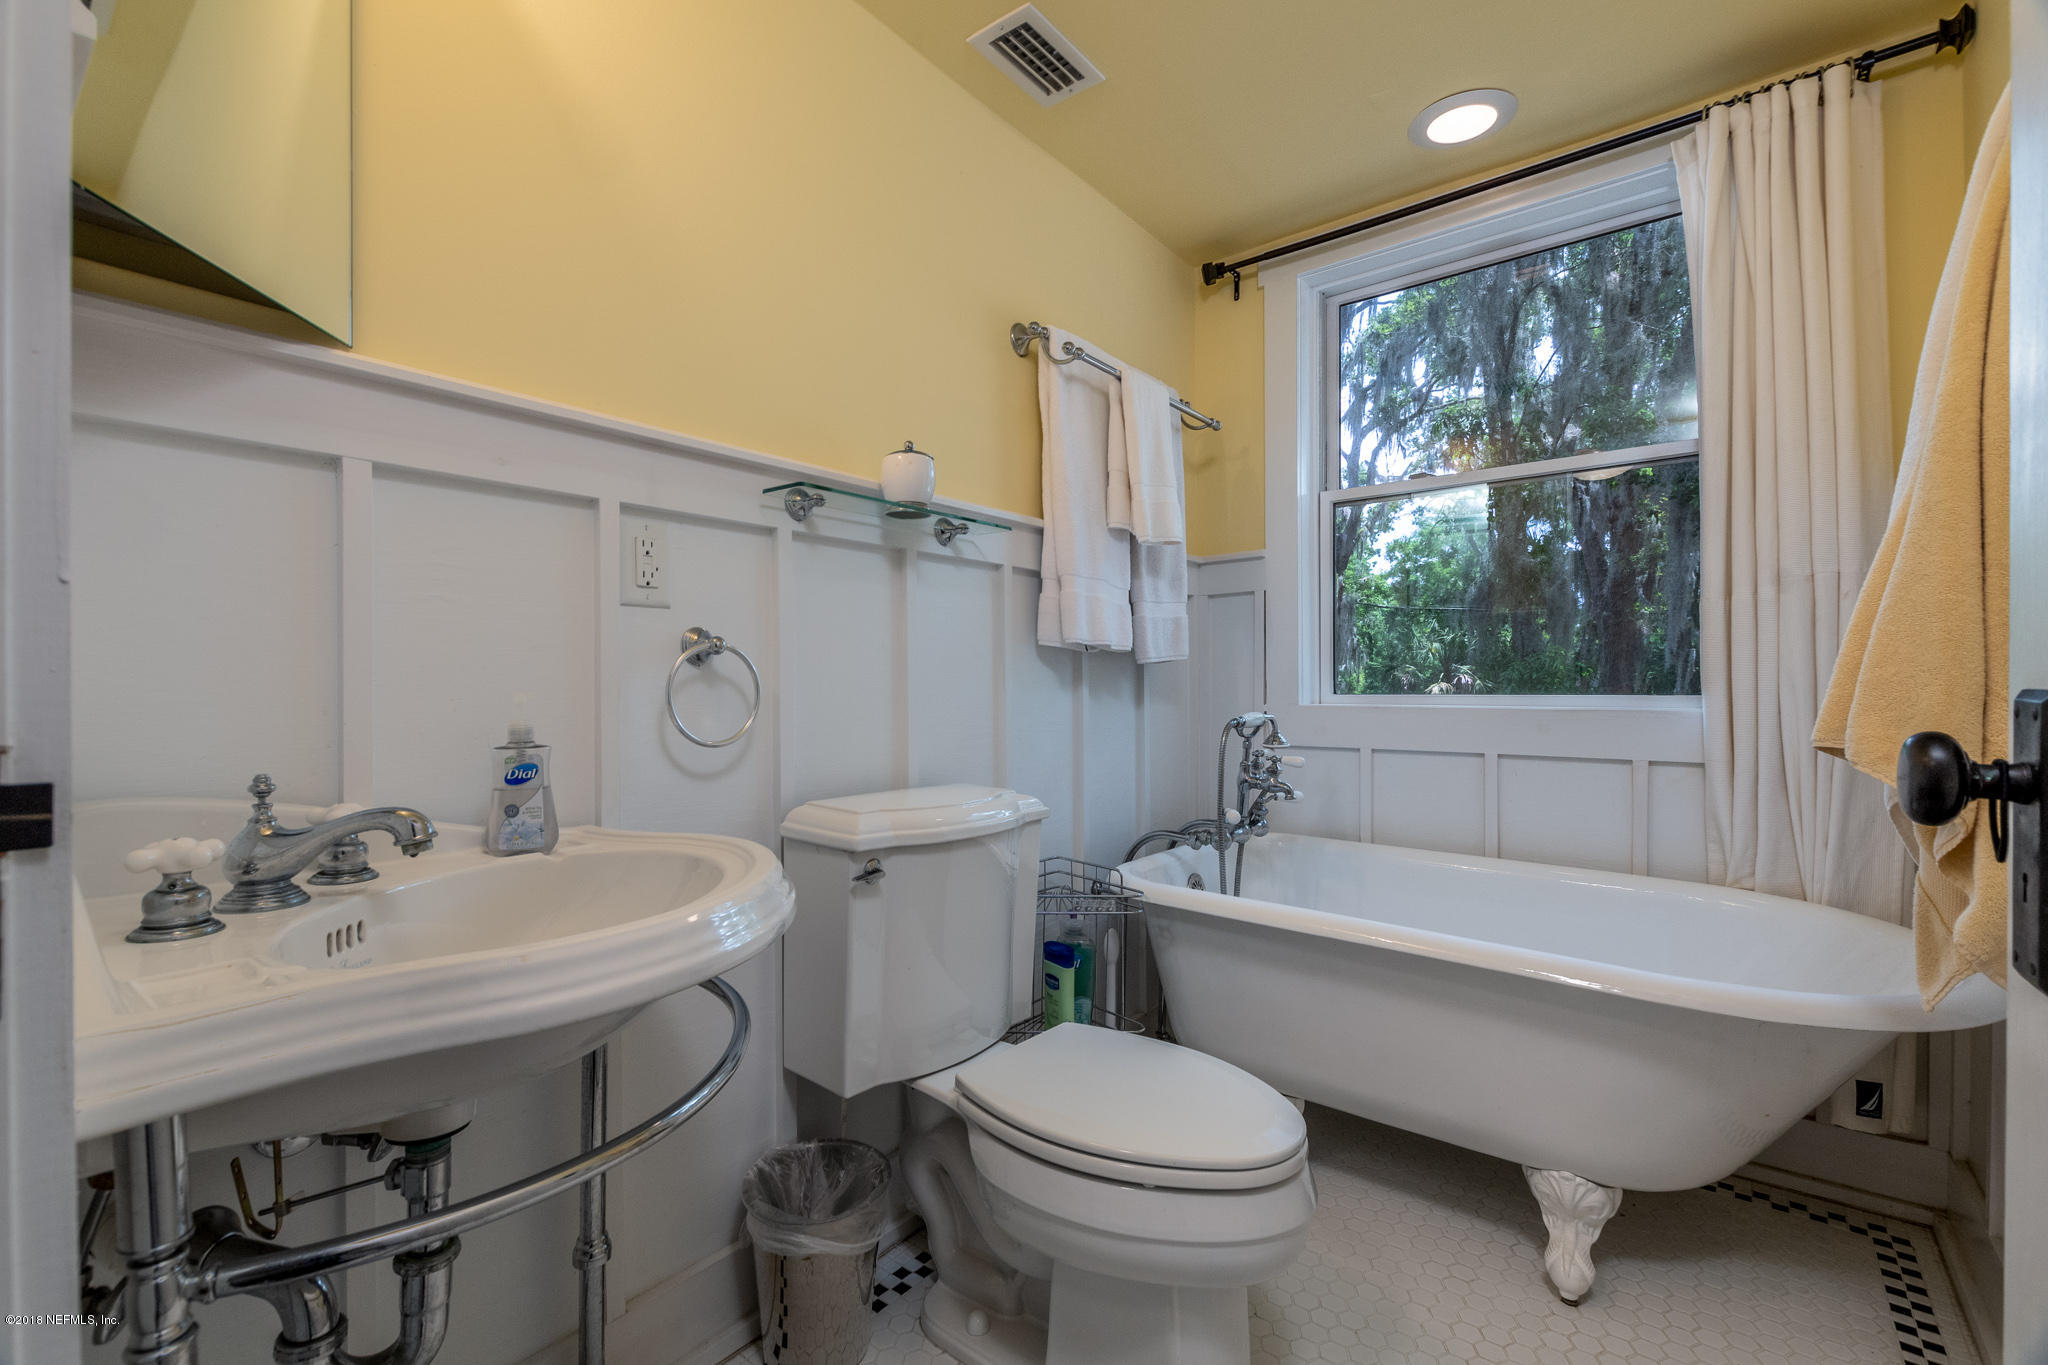 102 STEAMBOAT, SAN MATEO, FLORIDA 32187, 2 Bedrooms Bedrooms, ,2 BathroomsBathrooms,Residential - single family,For sale,STEAMBOAT,882401